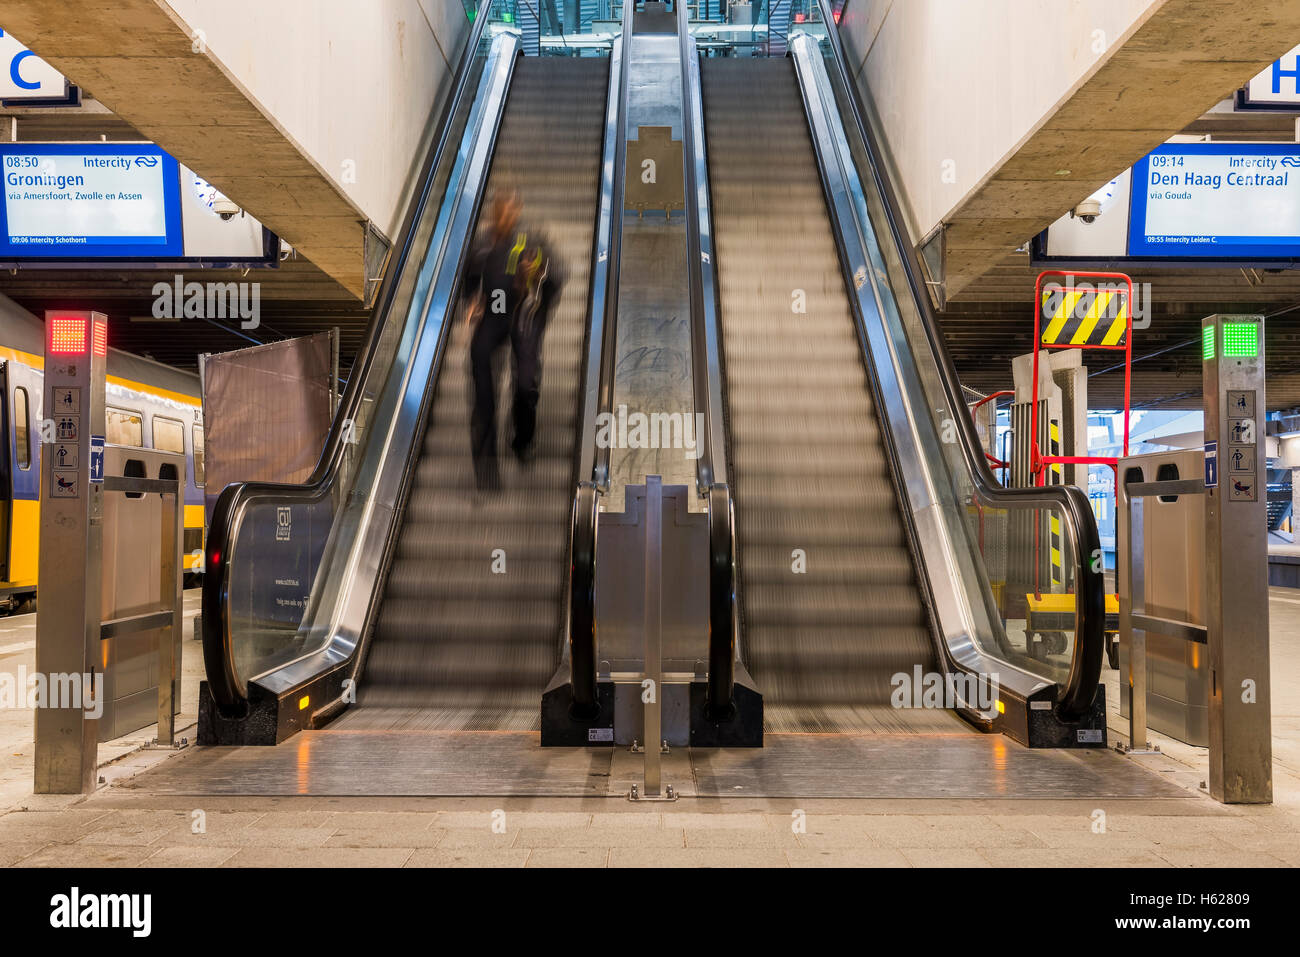 Utrecht, The Netherlands - October 12, 2016: Central hall of NS Central Railway Station Utrecht with escalator, - Stock Image